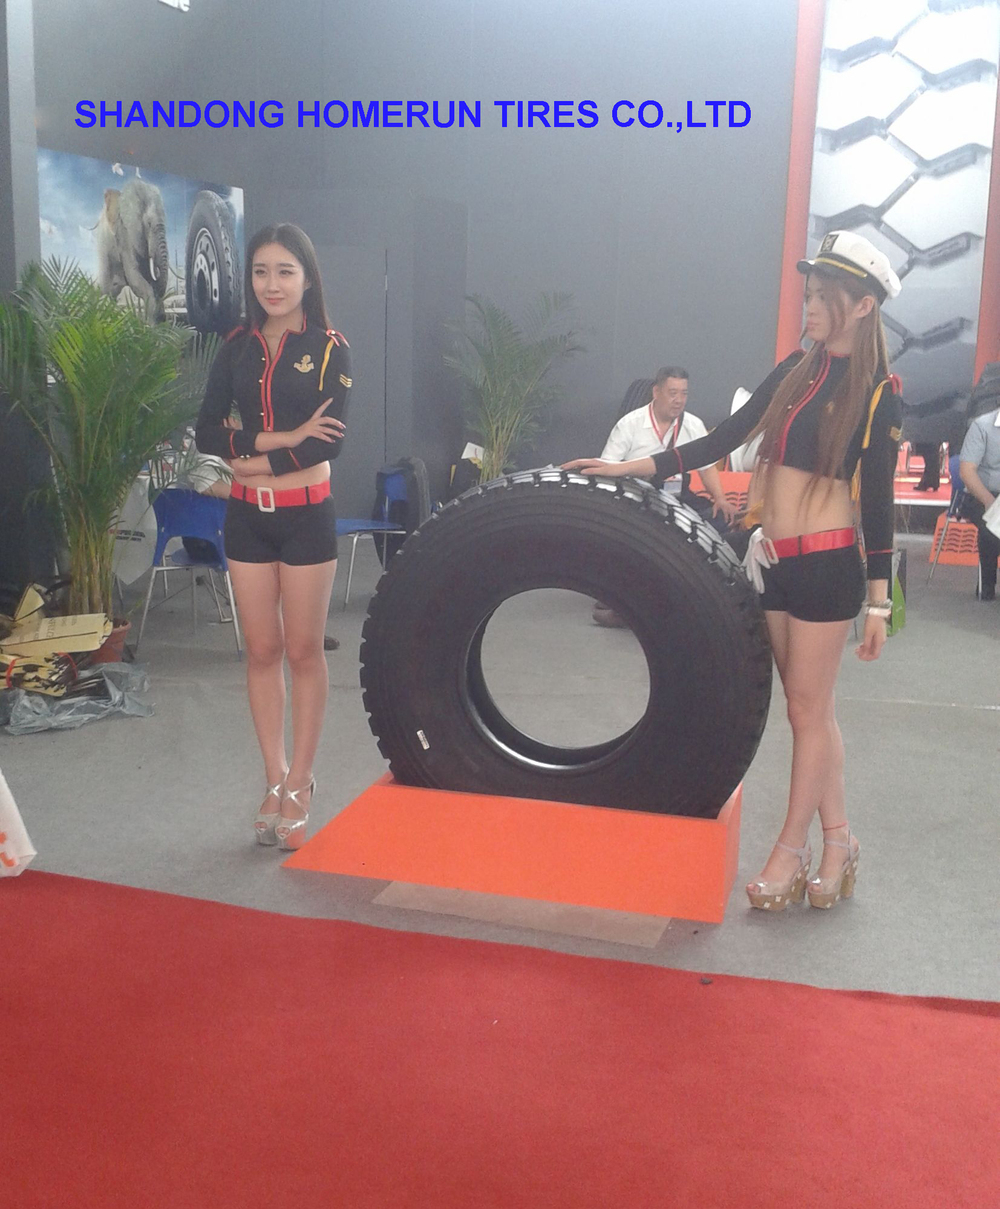 11R22.5,295/75R22.5, 11R24.5 TRANSKING BRAND China Truck tire with DOT ,NORM ,Smartway